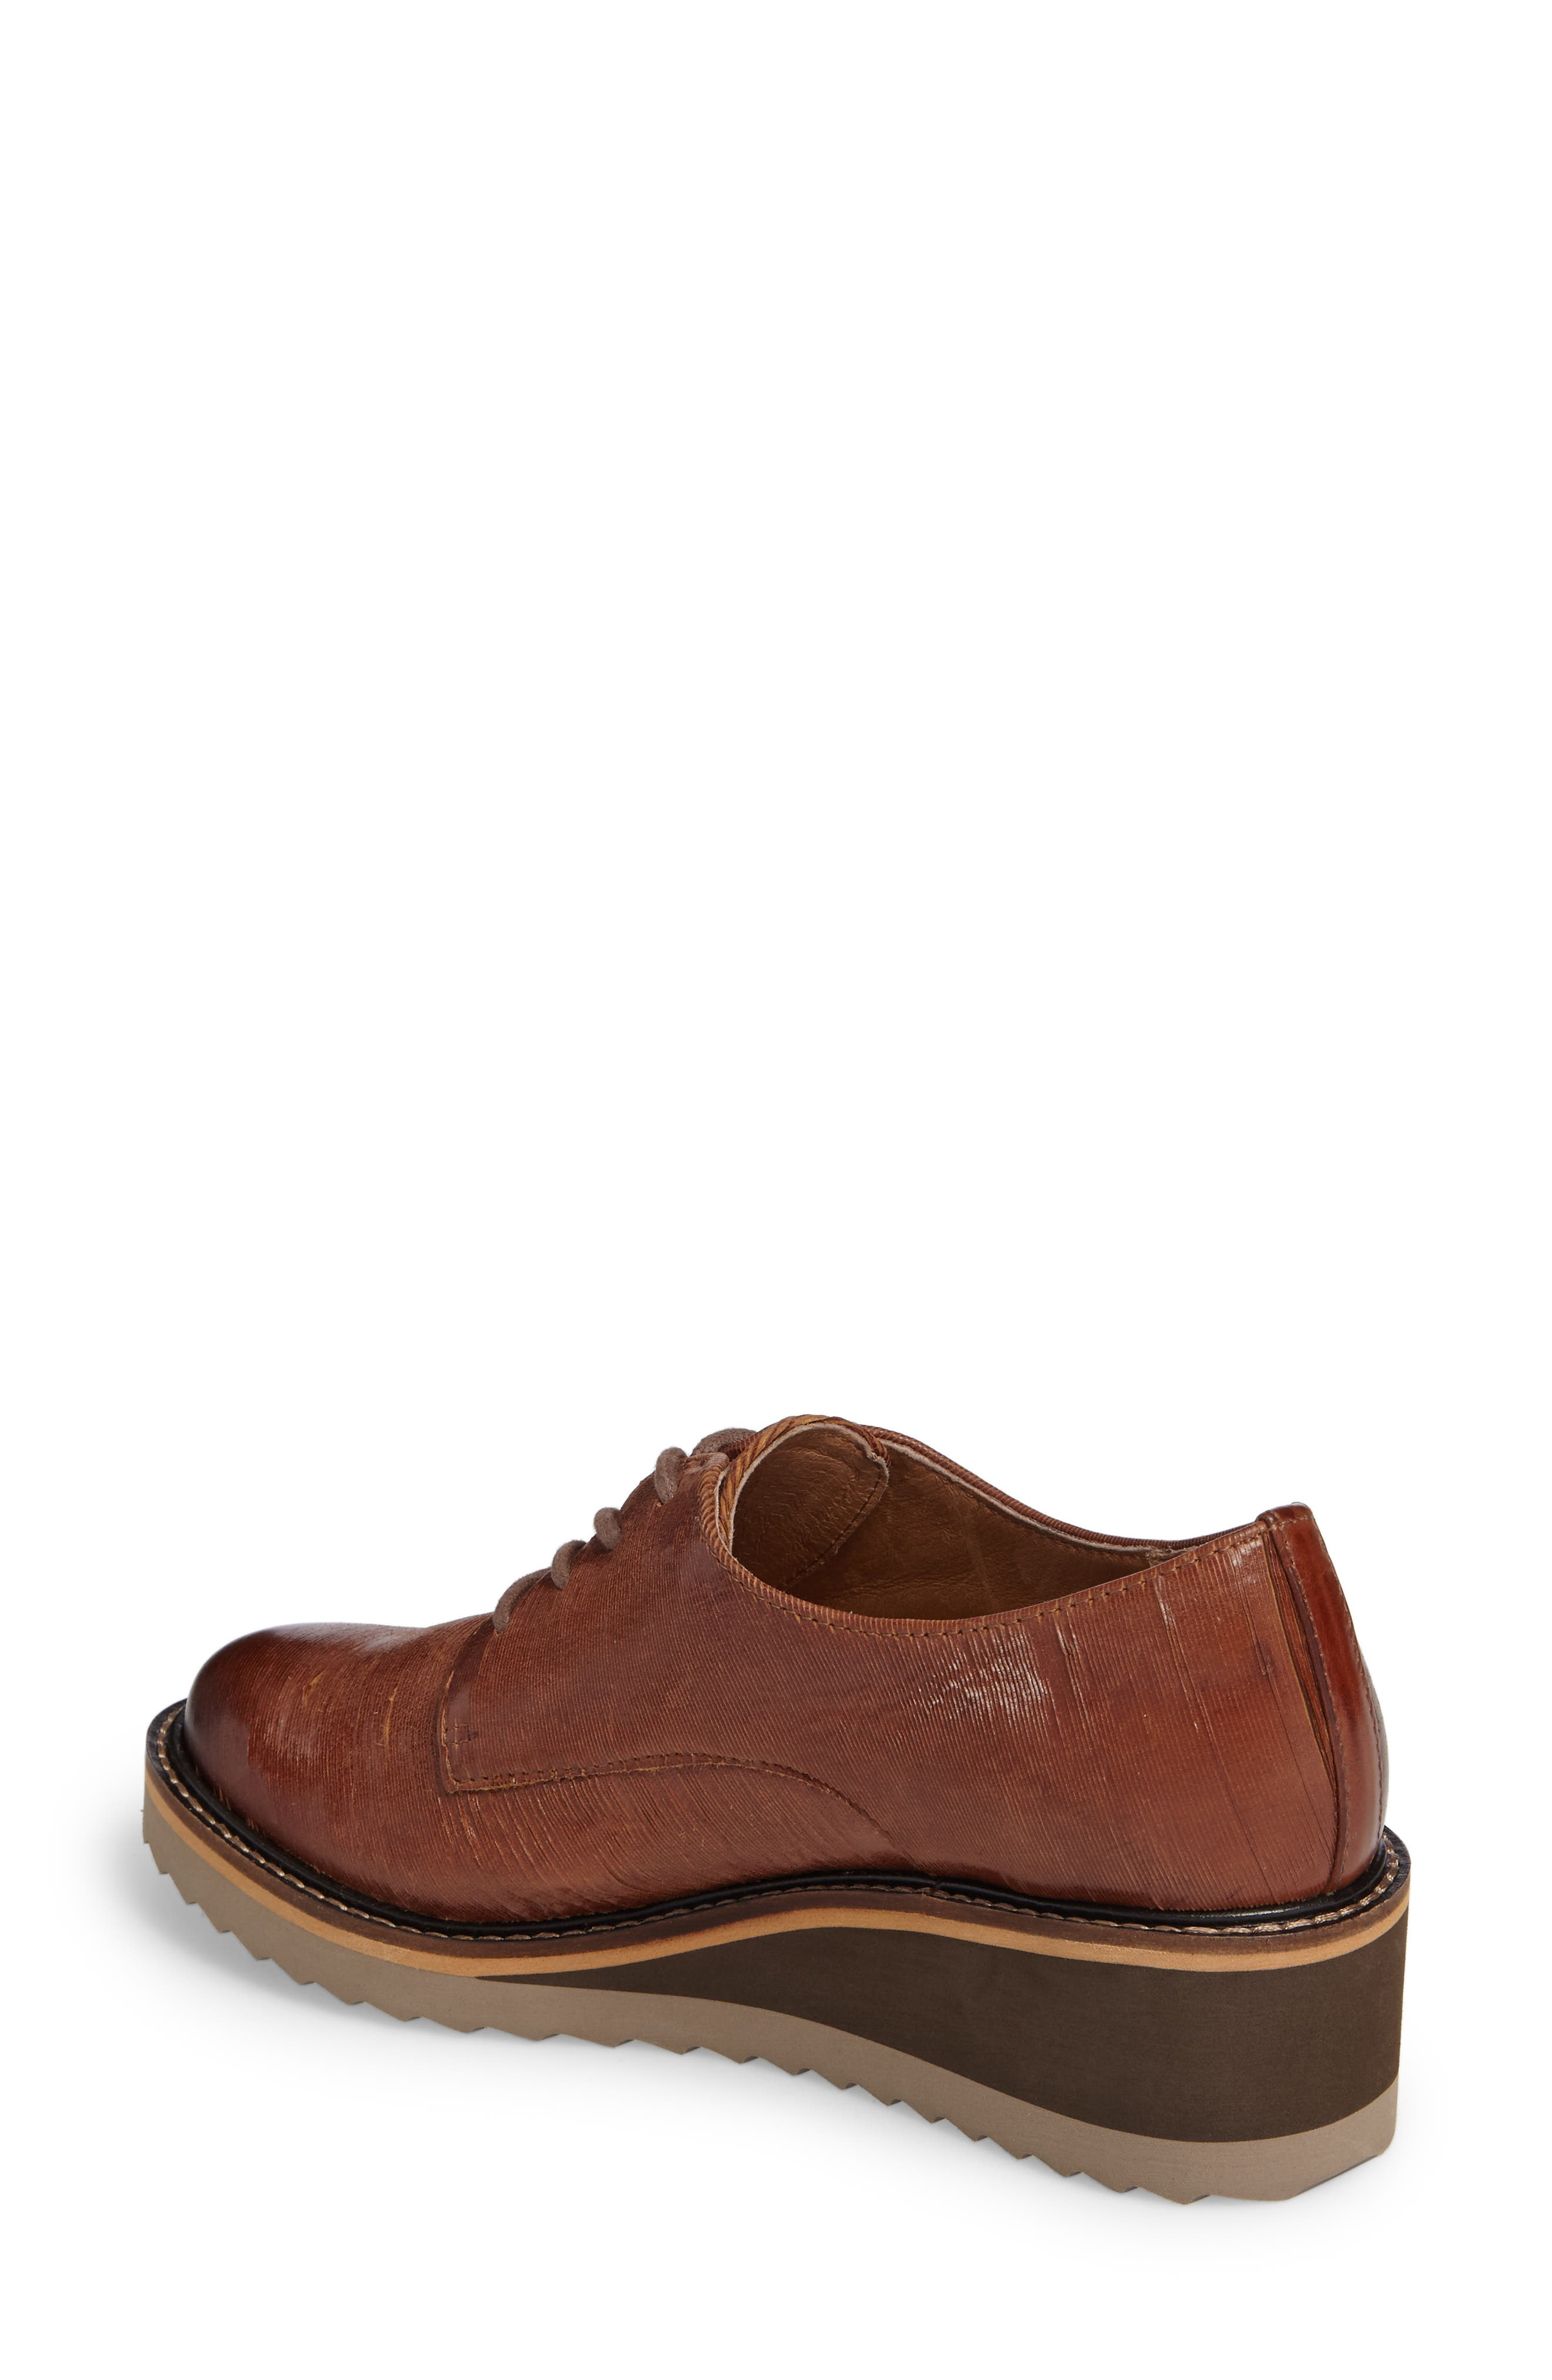 Salerno Oxford,                             Alternate thumbnail 2, color,                             WHISKEY SUEDE